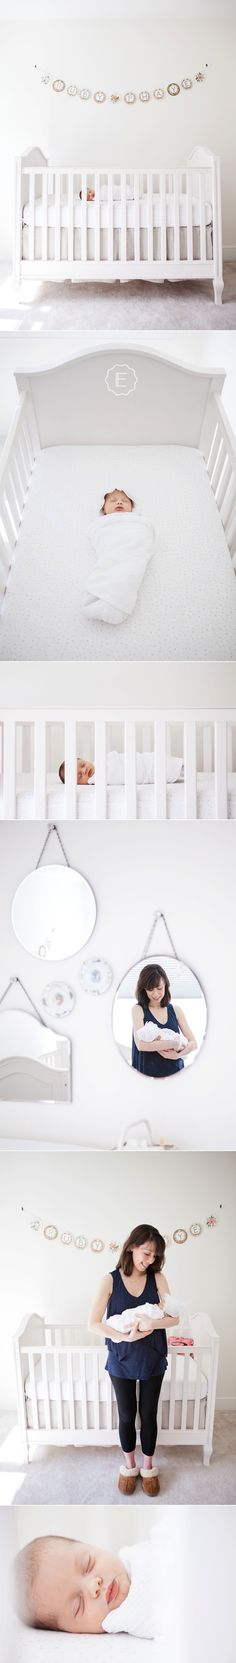 Natural Light Newborn Photos | White Crib, Paper Source Botanical Garland, Lifestyle Portrait Session | Boston Area Family Photography by Elizabeth Clark